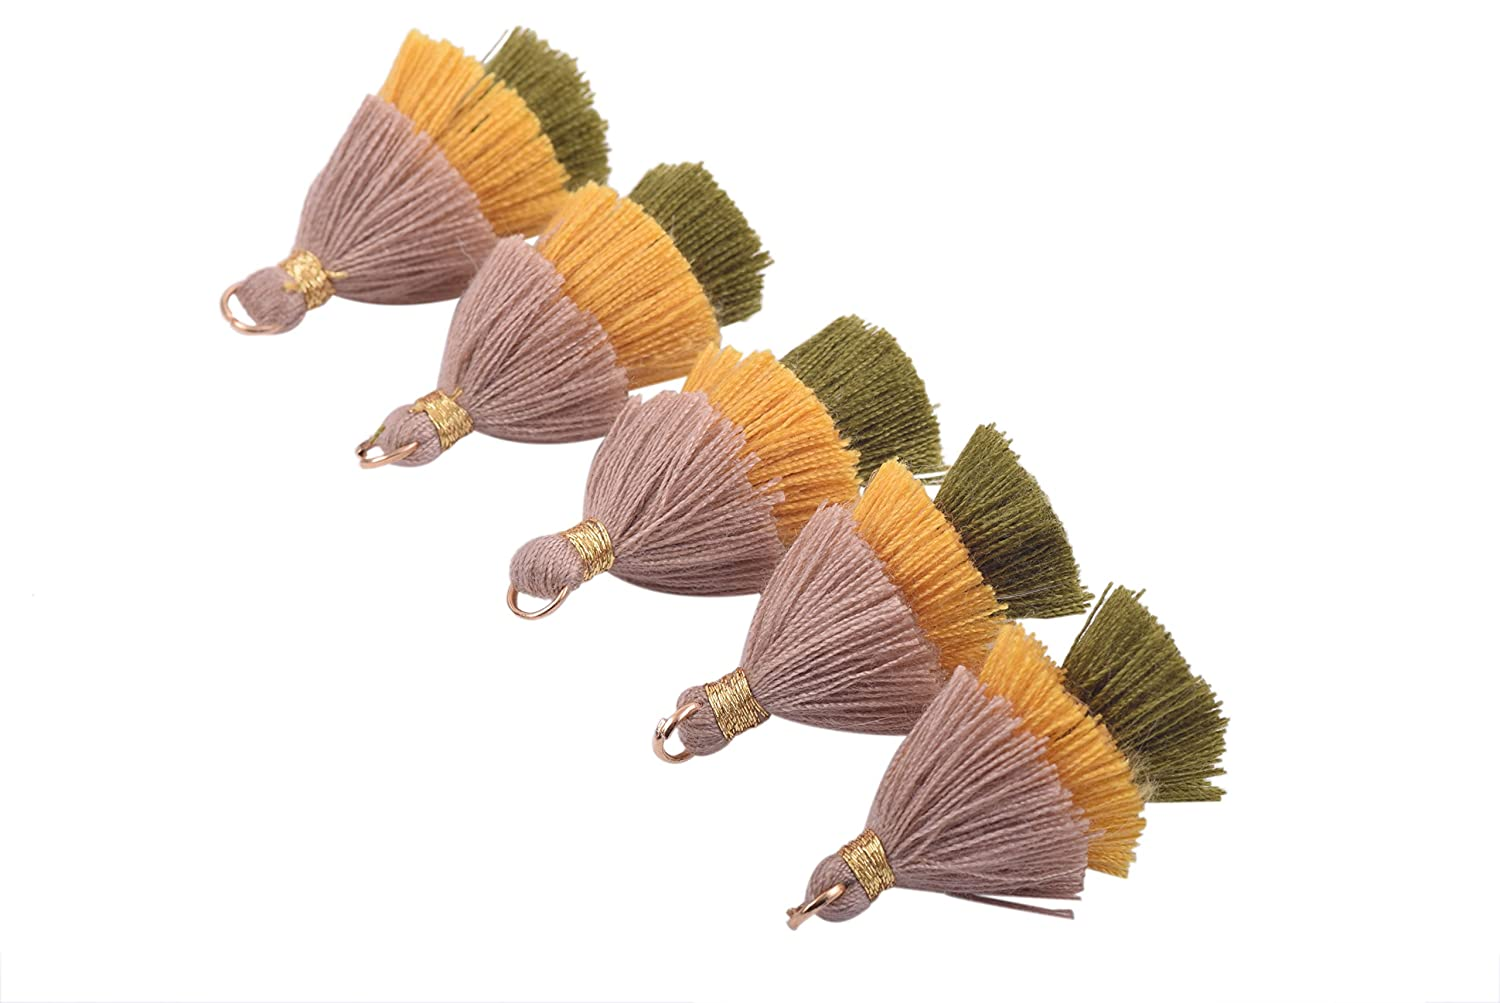 KONMAY 10pcs 1.4 Tiny Tri-Layered Tassels with Gold Jump Ring for Jewelry Making 3.5cm Clothing